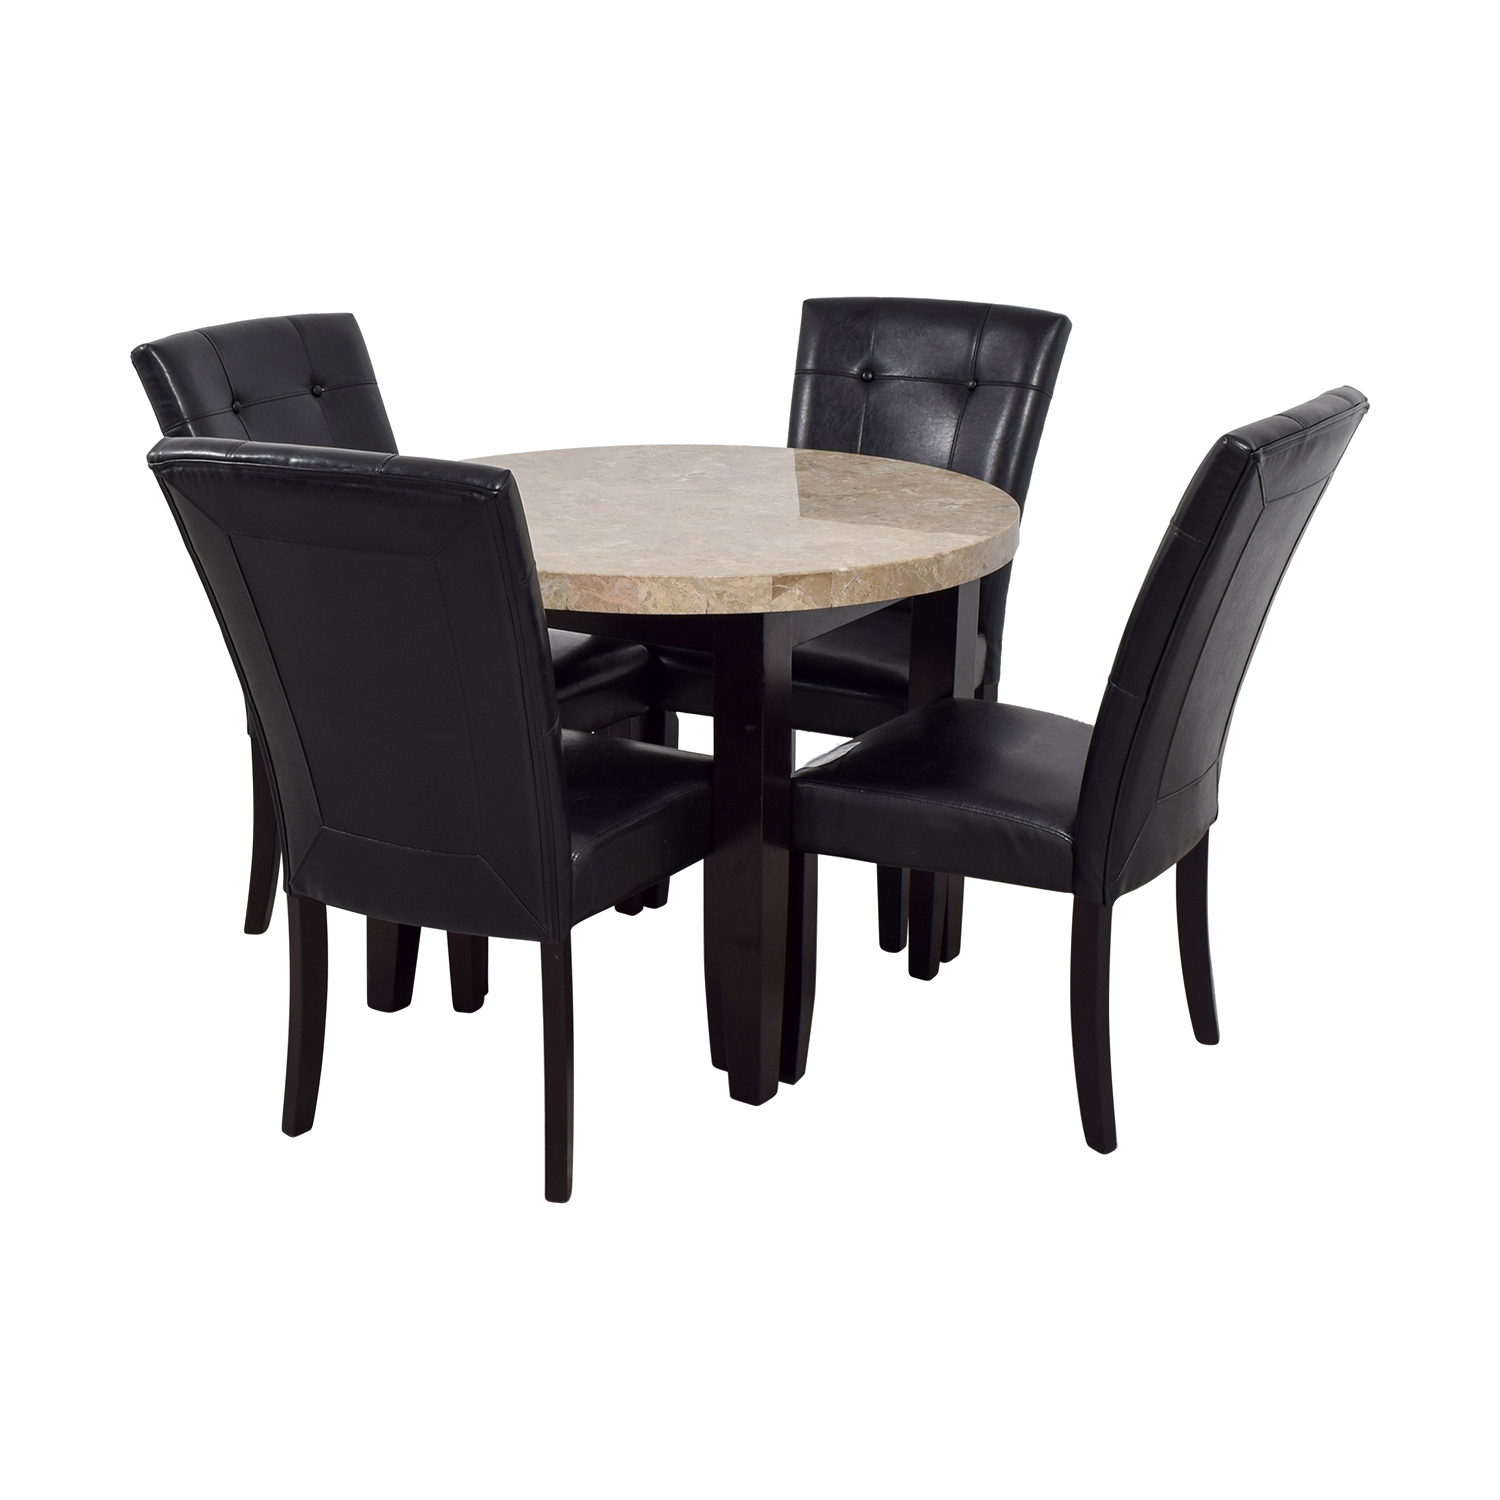 86 Off Faux Marble Kitchen Table With Chairs Tables